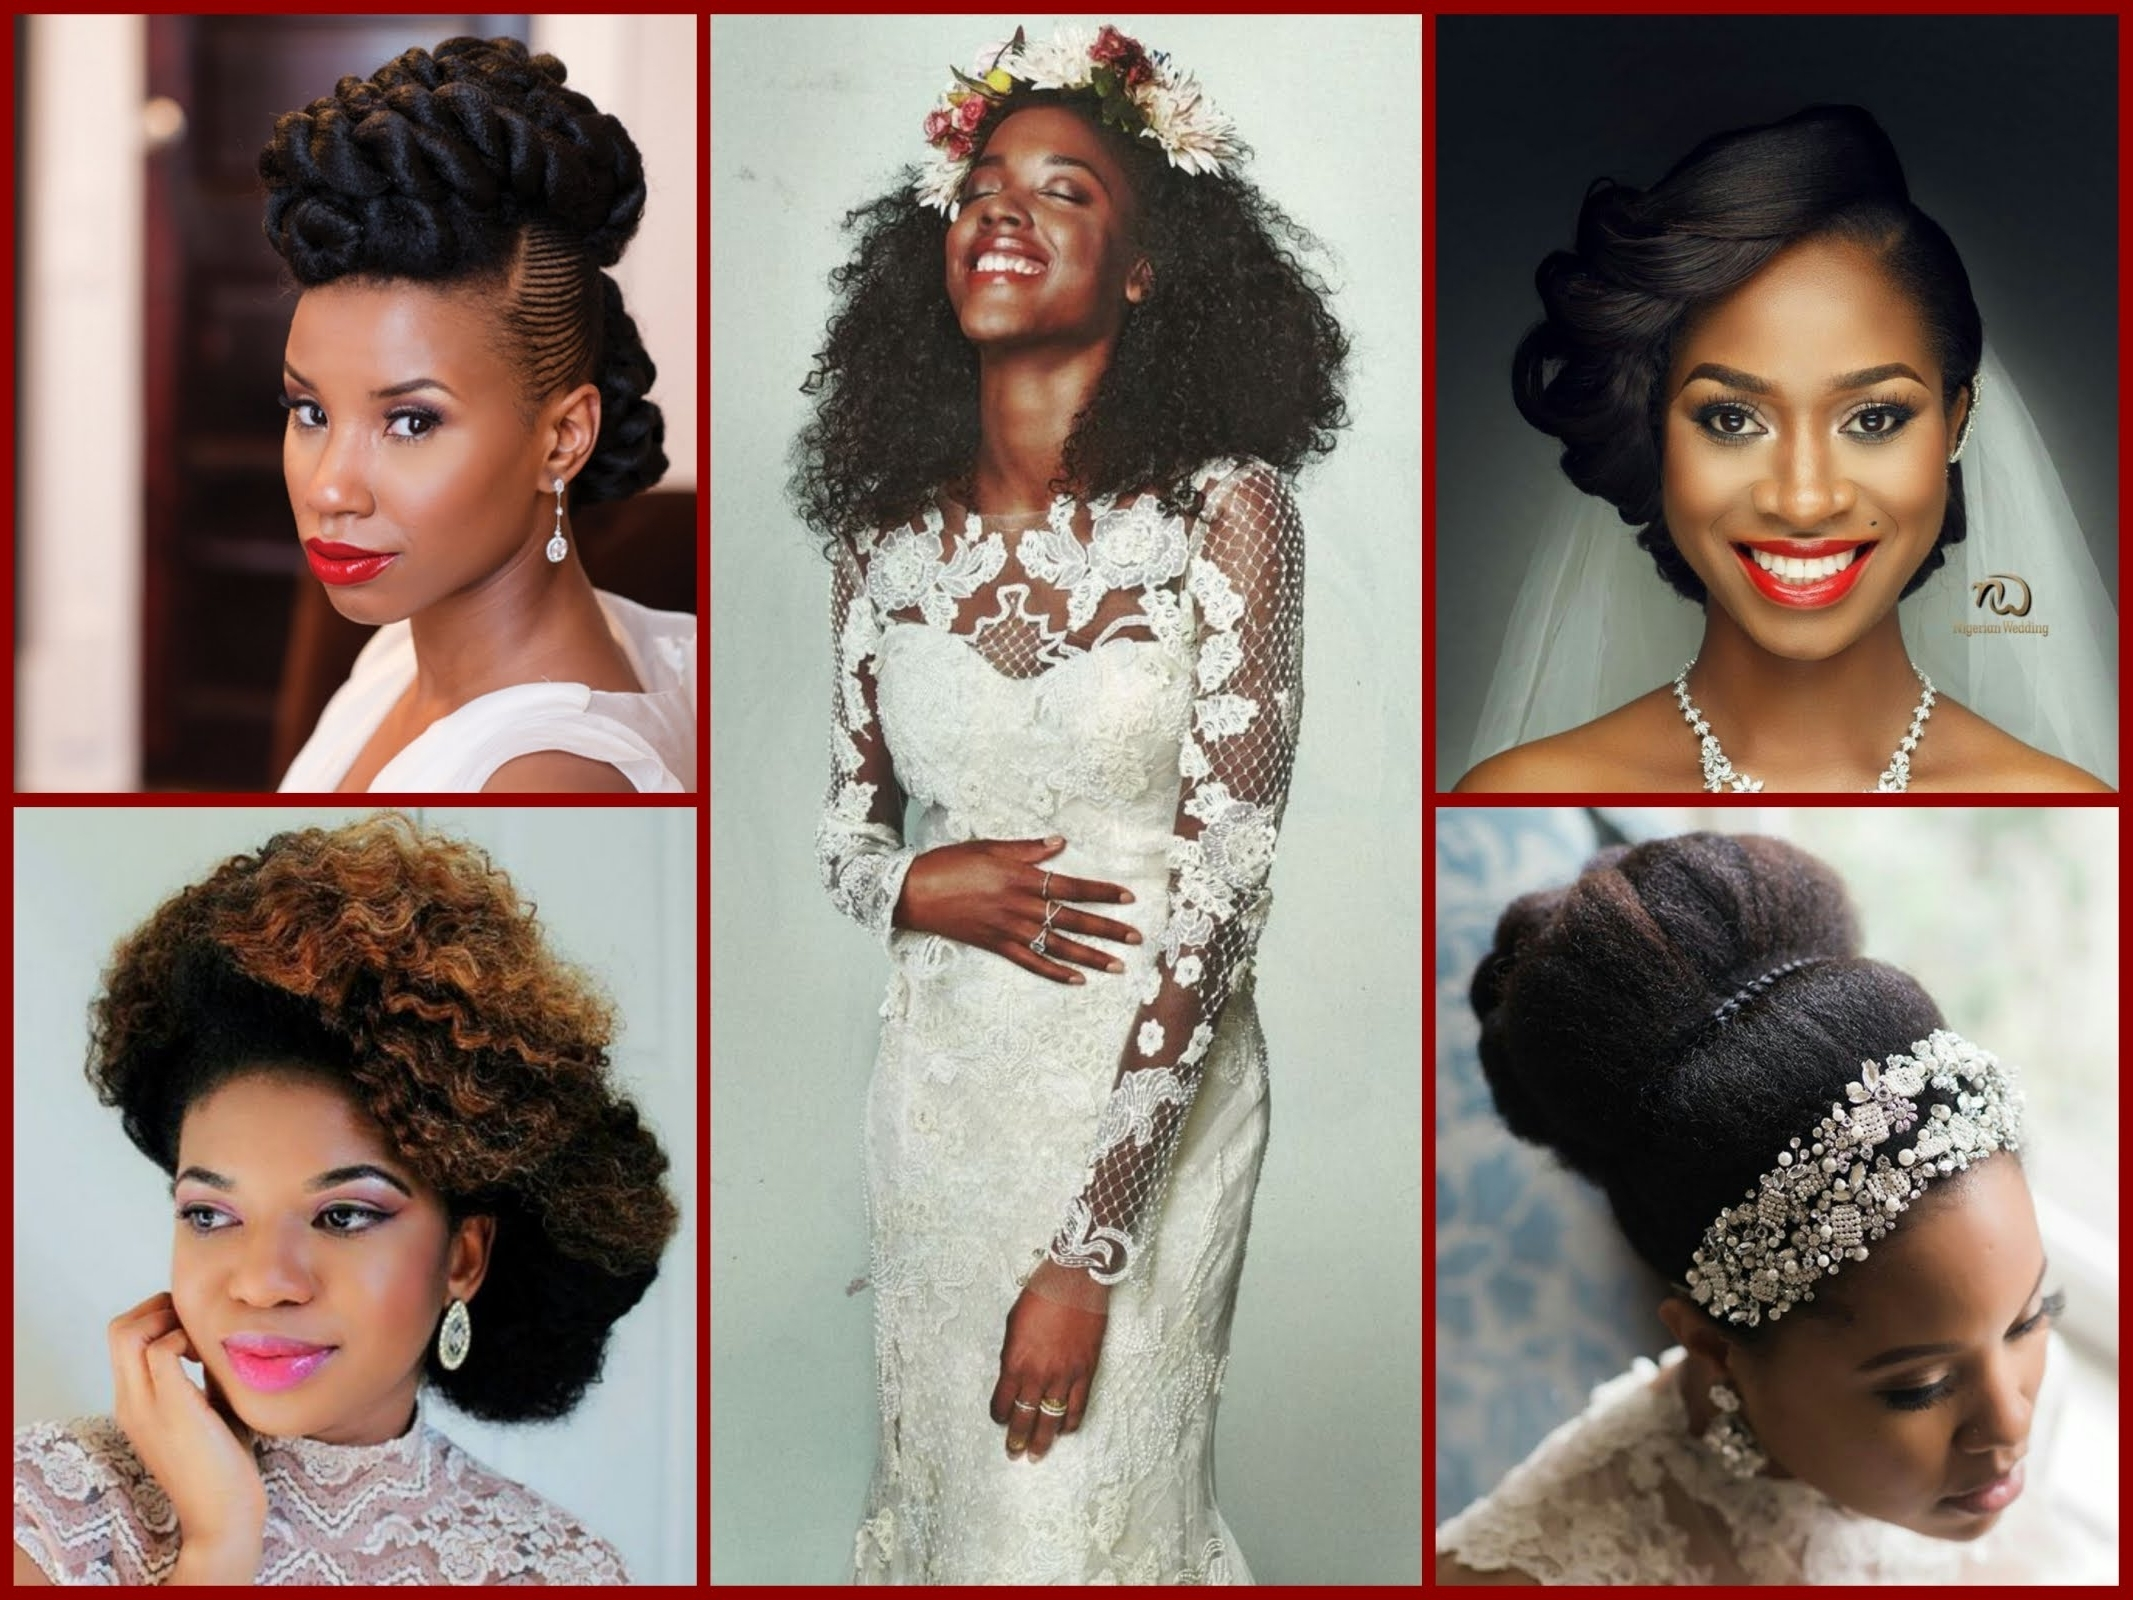 Black Women Wedding Hairstyles – 40 Beautiful Updos – Youtube With Regard To Current Wedding Hairstyles For Black Woman (View 3 of 15)